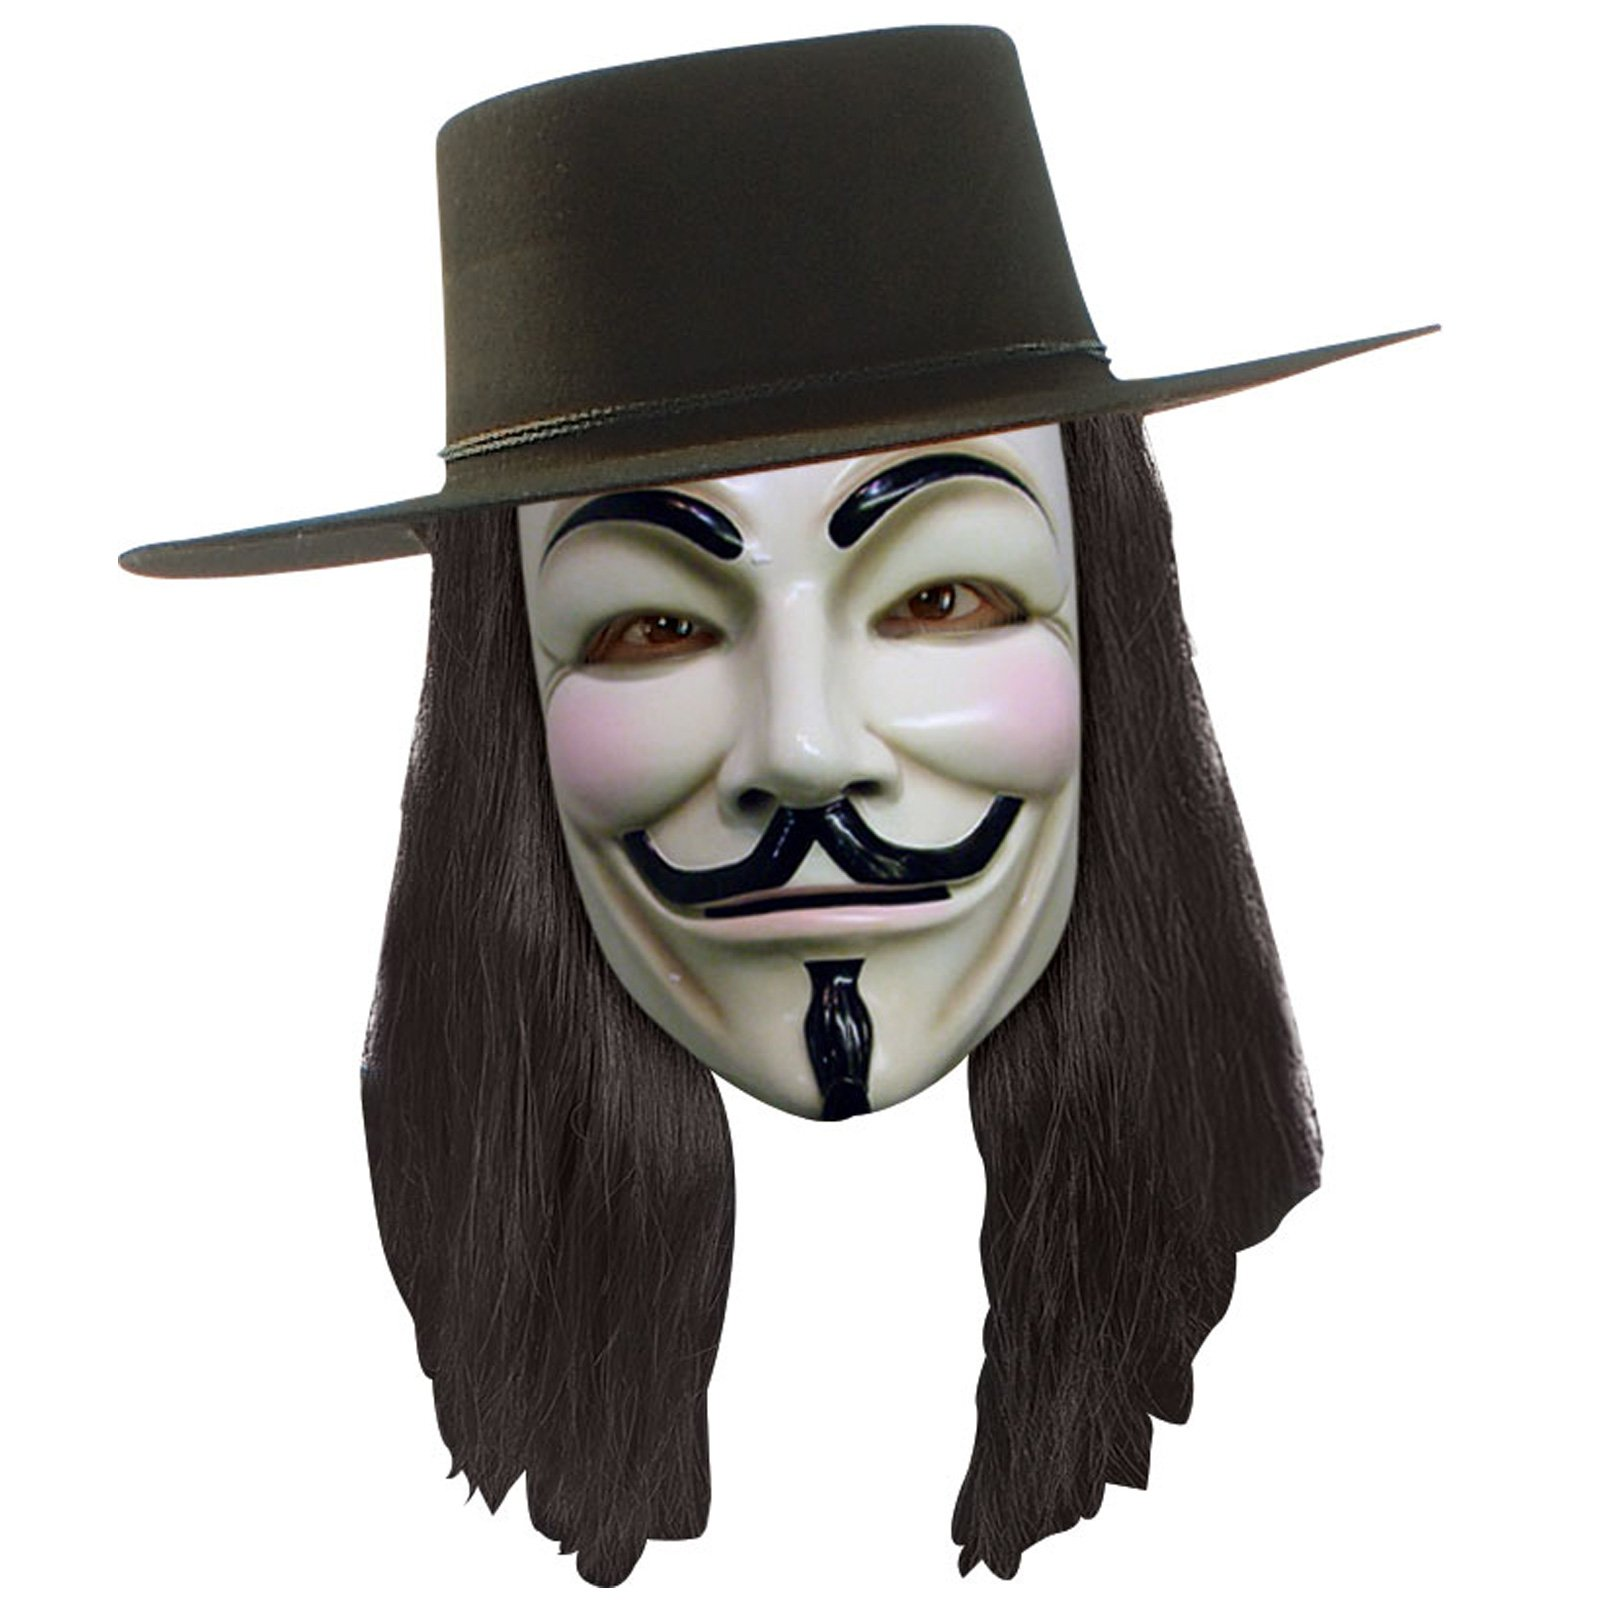 V for Vendetta | Public Frenemy